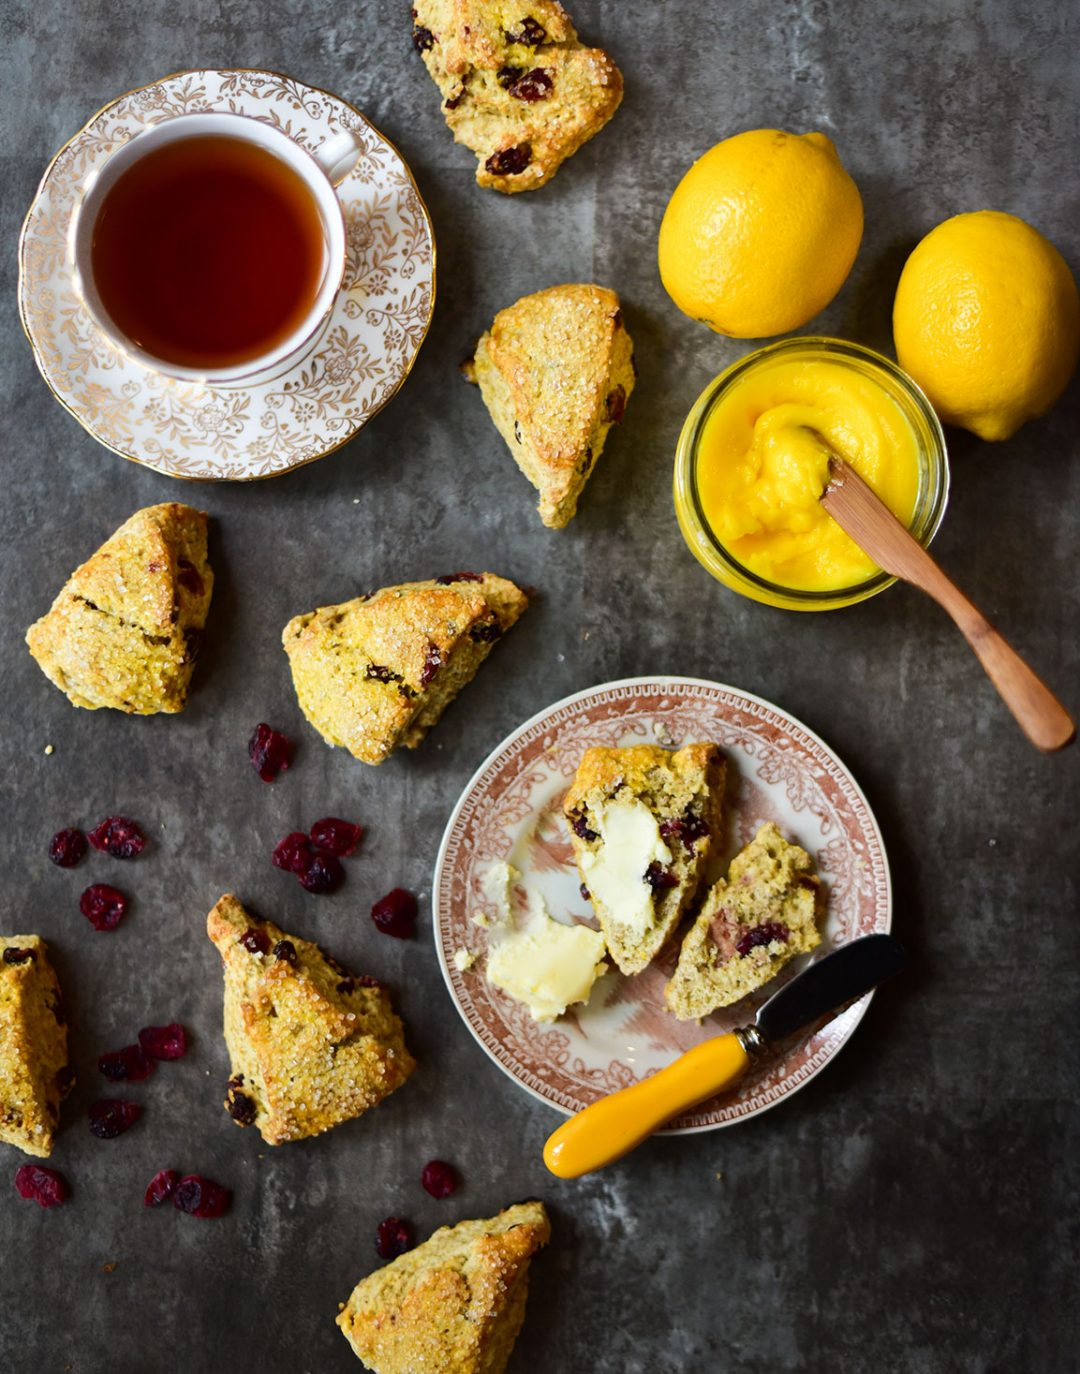 top view of a sliced scone on a brown patterned plate with a bowl of lemon curd and scones on a dark background